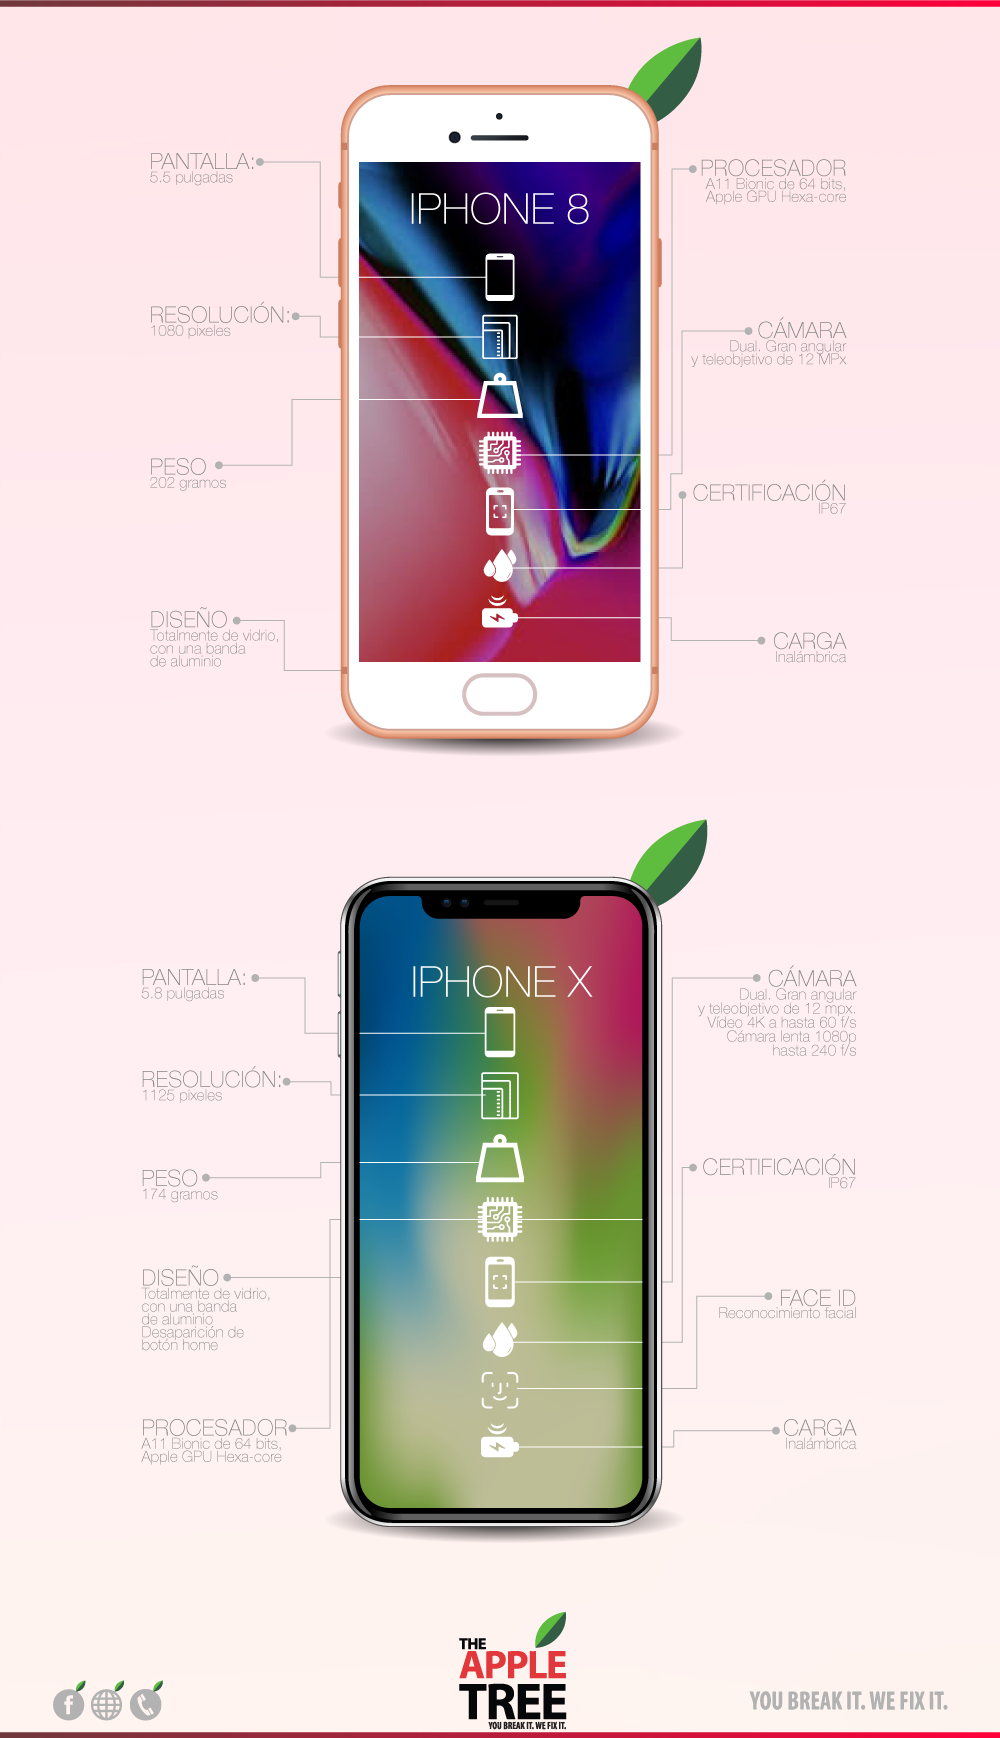 Iphone-X-vs-Iphone-8-The-Apple-Tree-Infografía